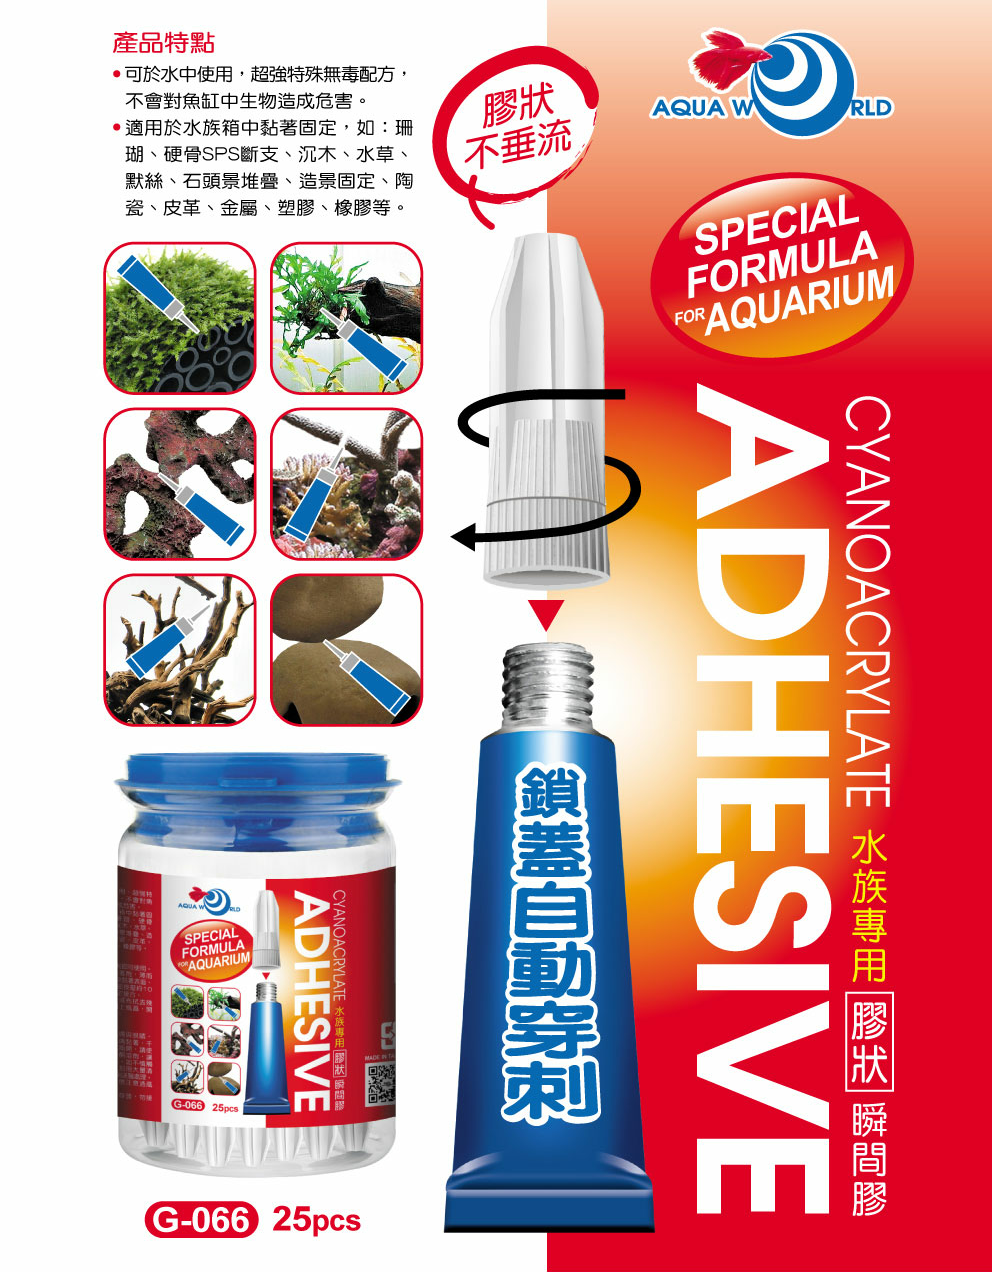 UP Aqua Aquarium Glue G-066